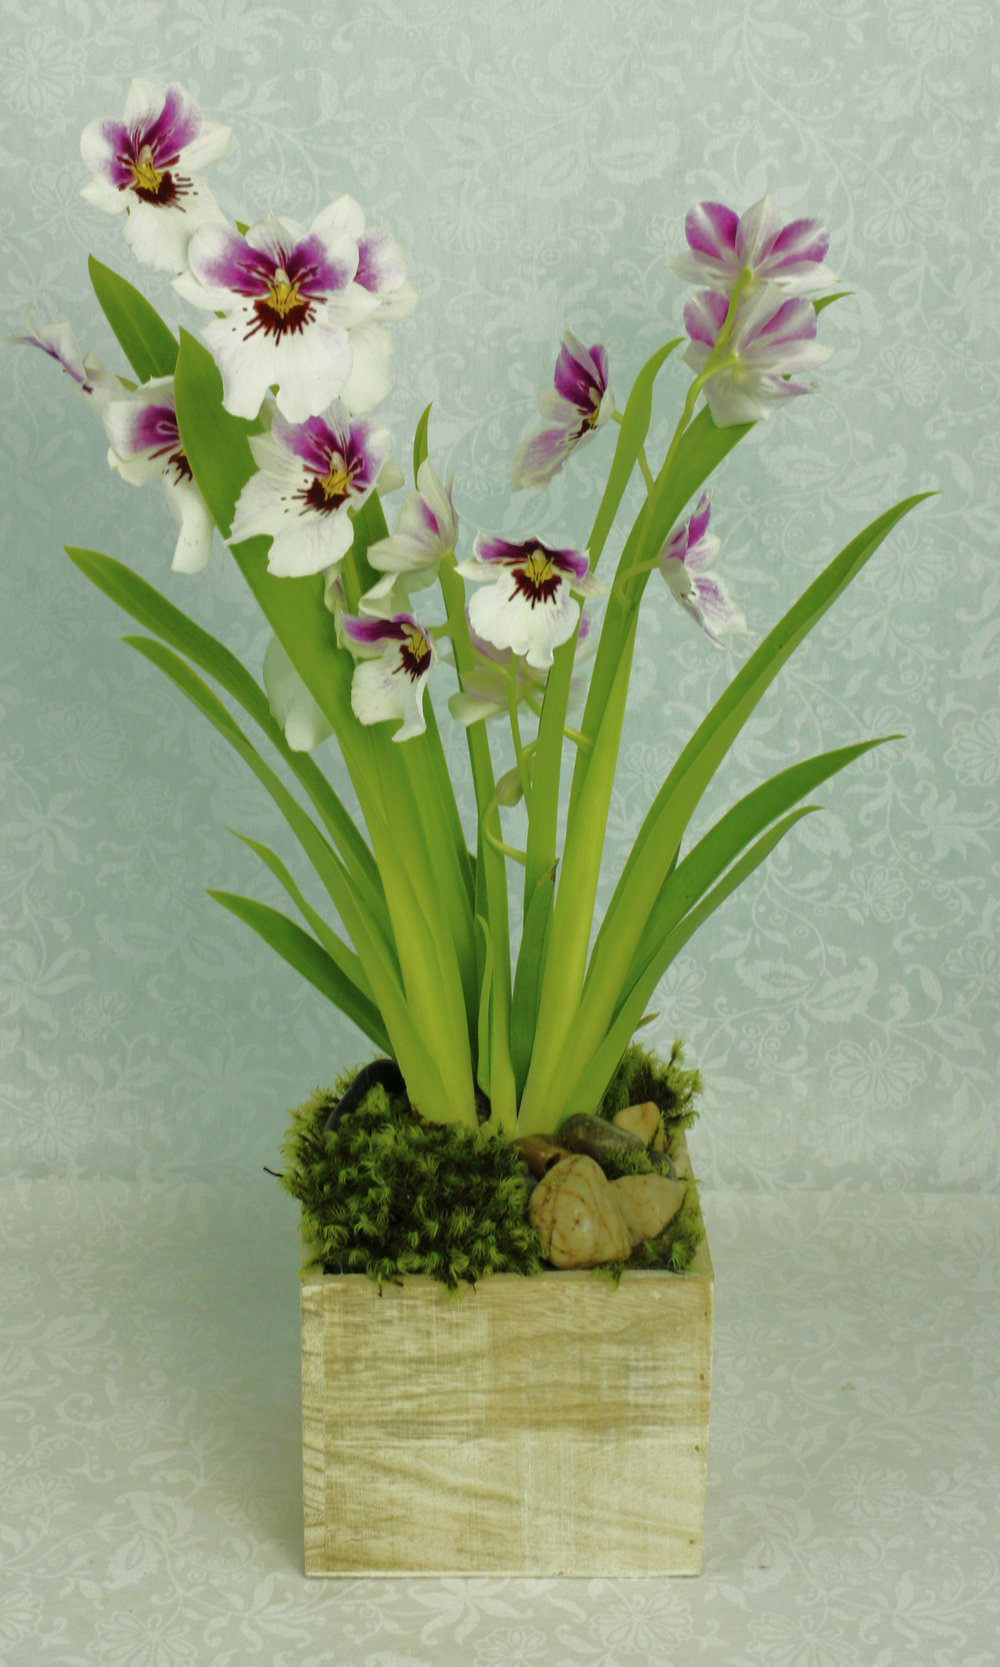 Pansy Orchid - very popular when they are in season, they have a lovely fragrance and large blooms